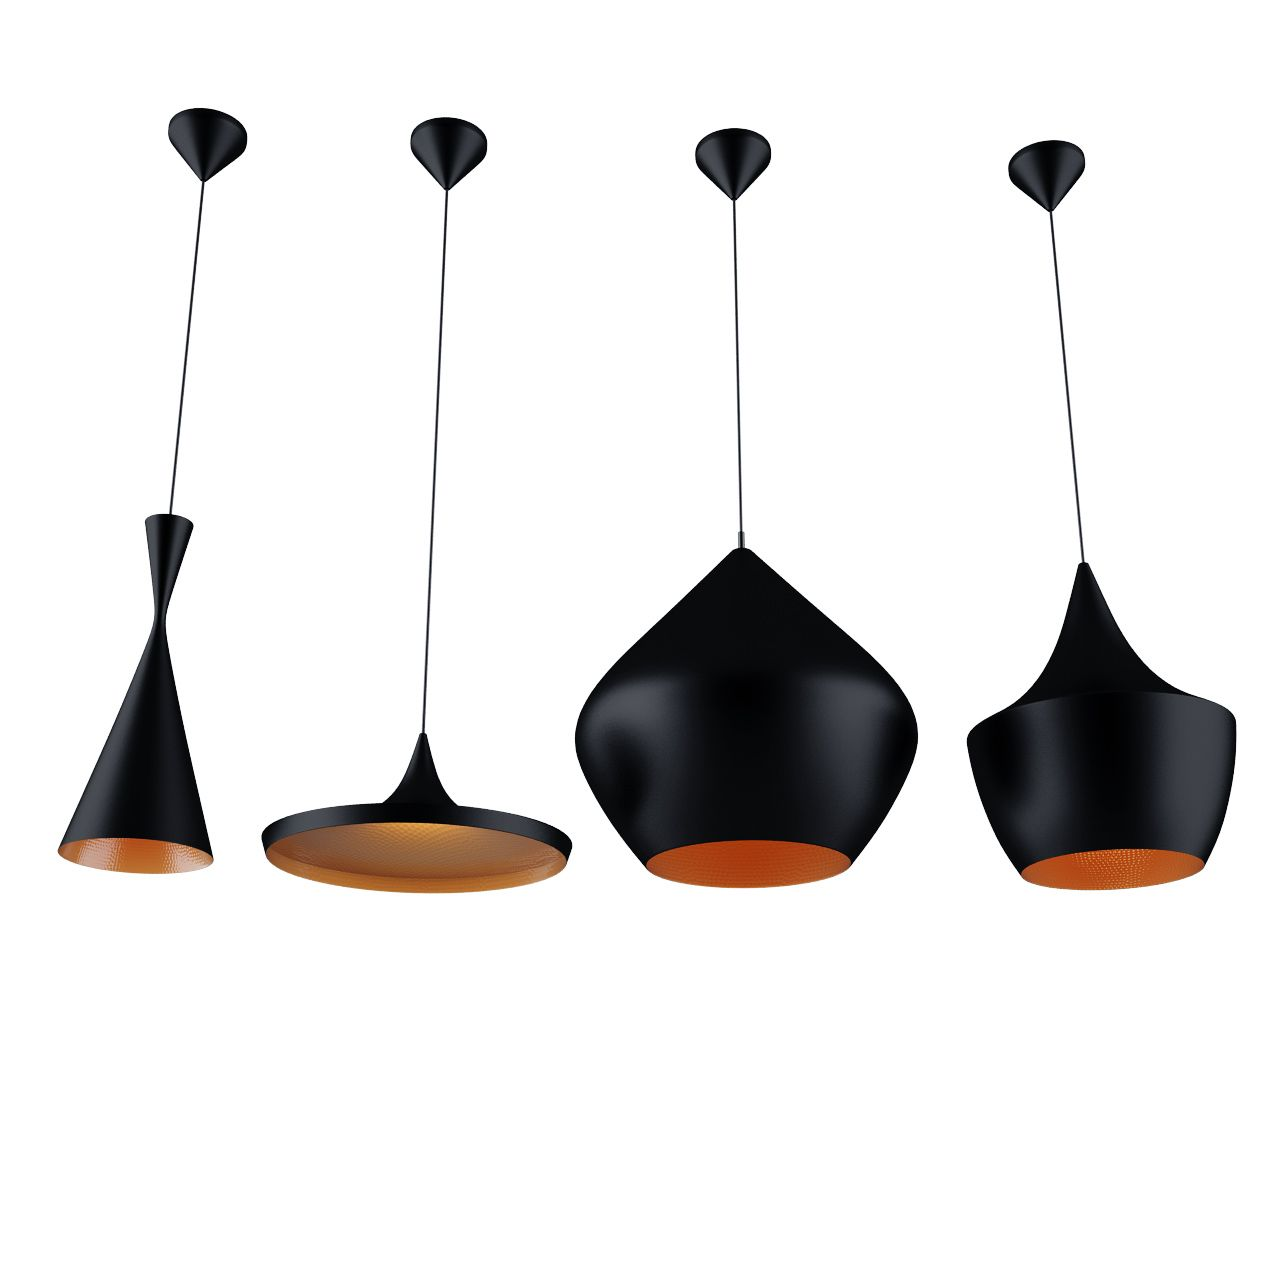 free 3d model well known beat lights by tom dixon all. Black Bedroom Furniture Sets. Home Design Ideas